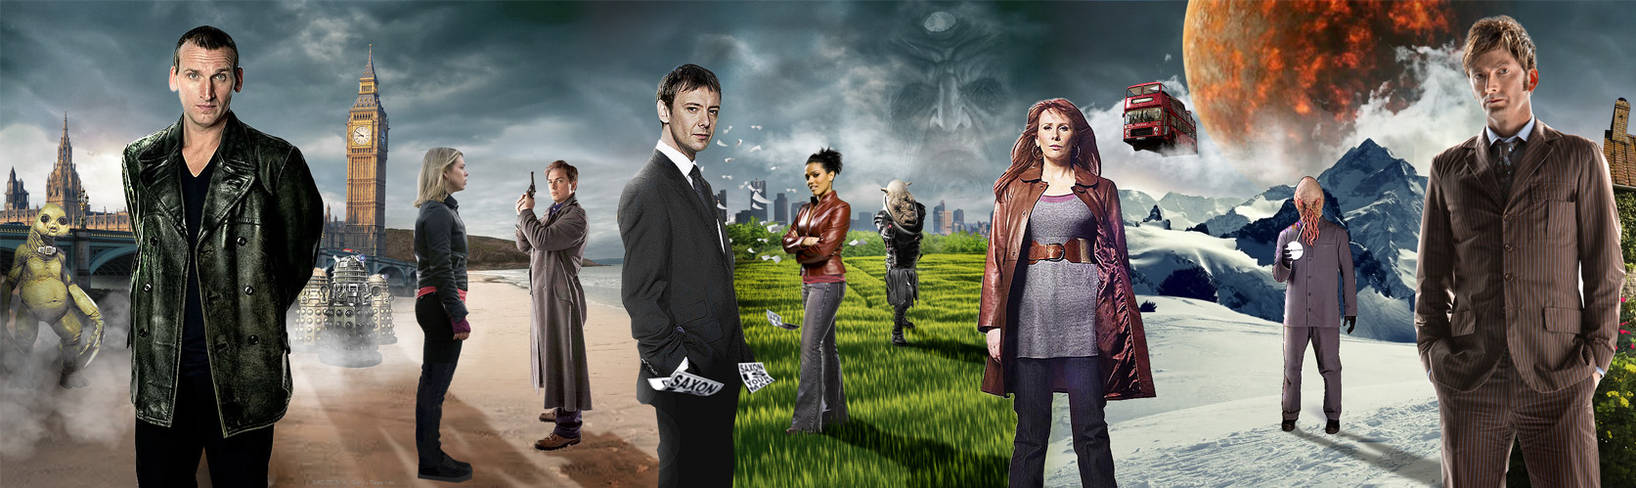 DOCTOR WHO - 10TH ANNIVERSARY BANNER 9th - 10th